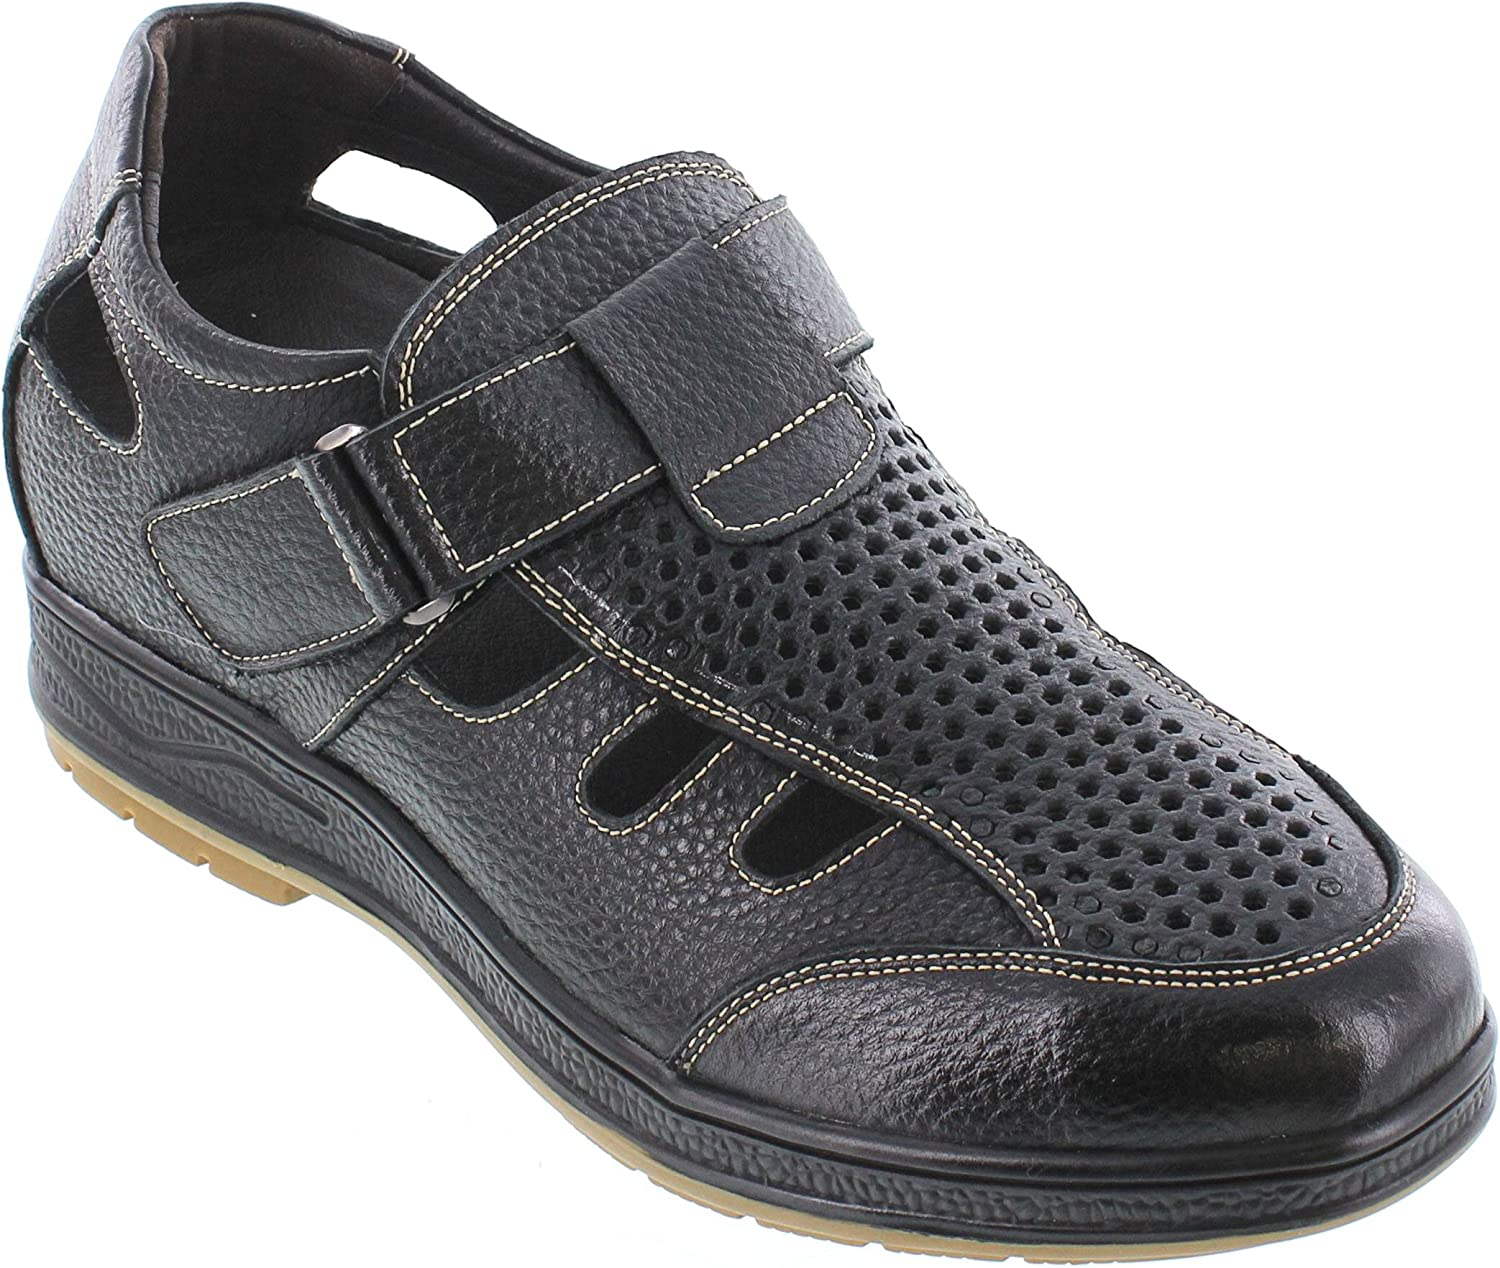 CALTO Men's Invisible Height Increasing Elevator shoes - Black Pebble Grain Leather Fisherman Sandals - 3 Inches Taller - J96702